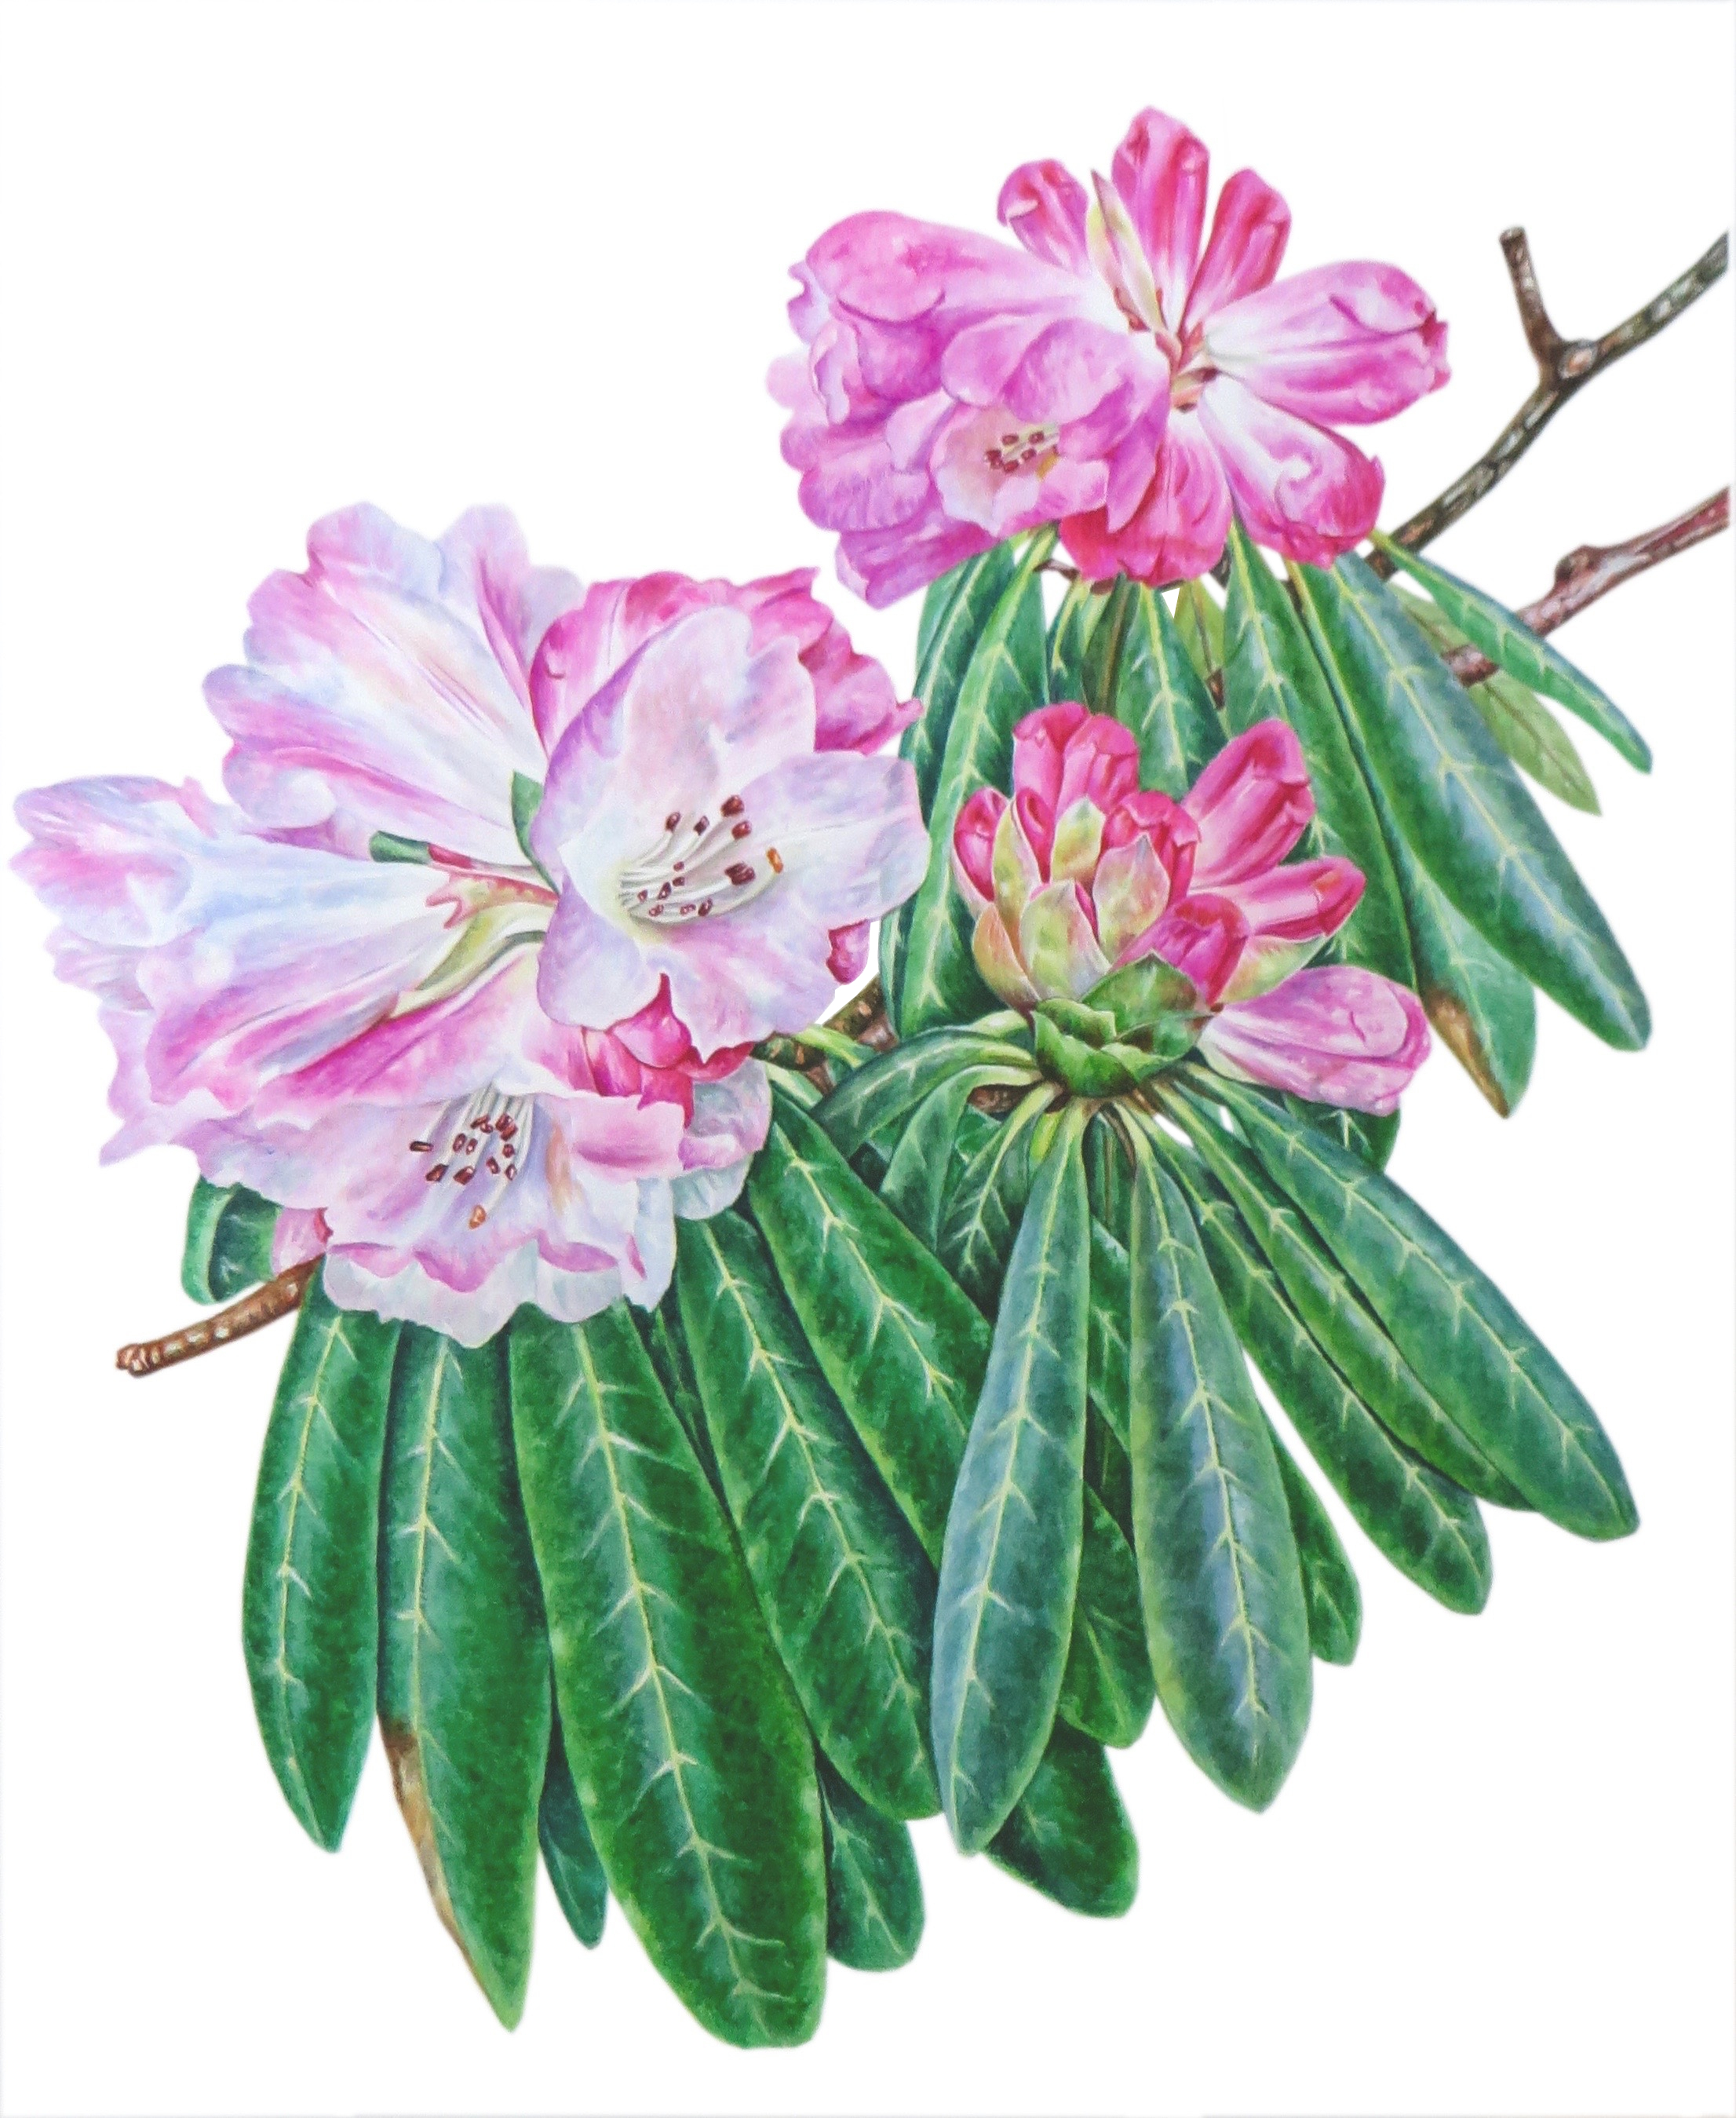 Rhododendron 'Calophytum'